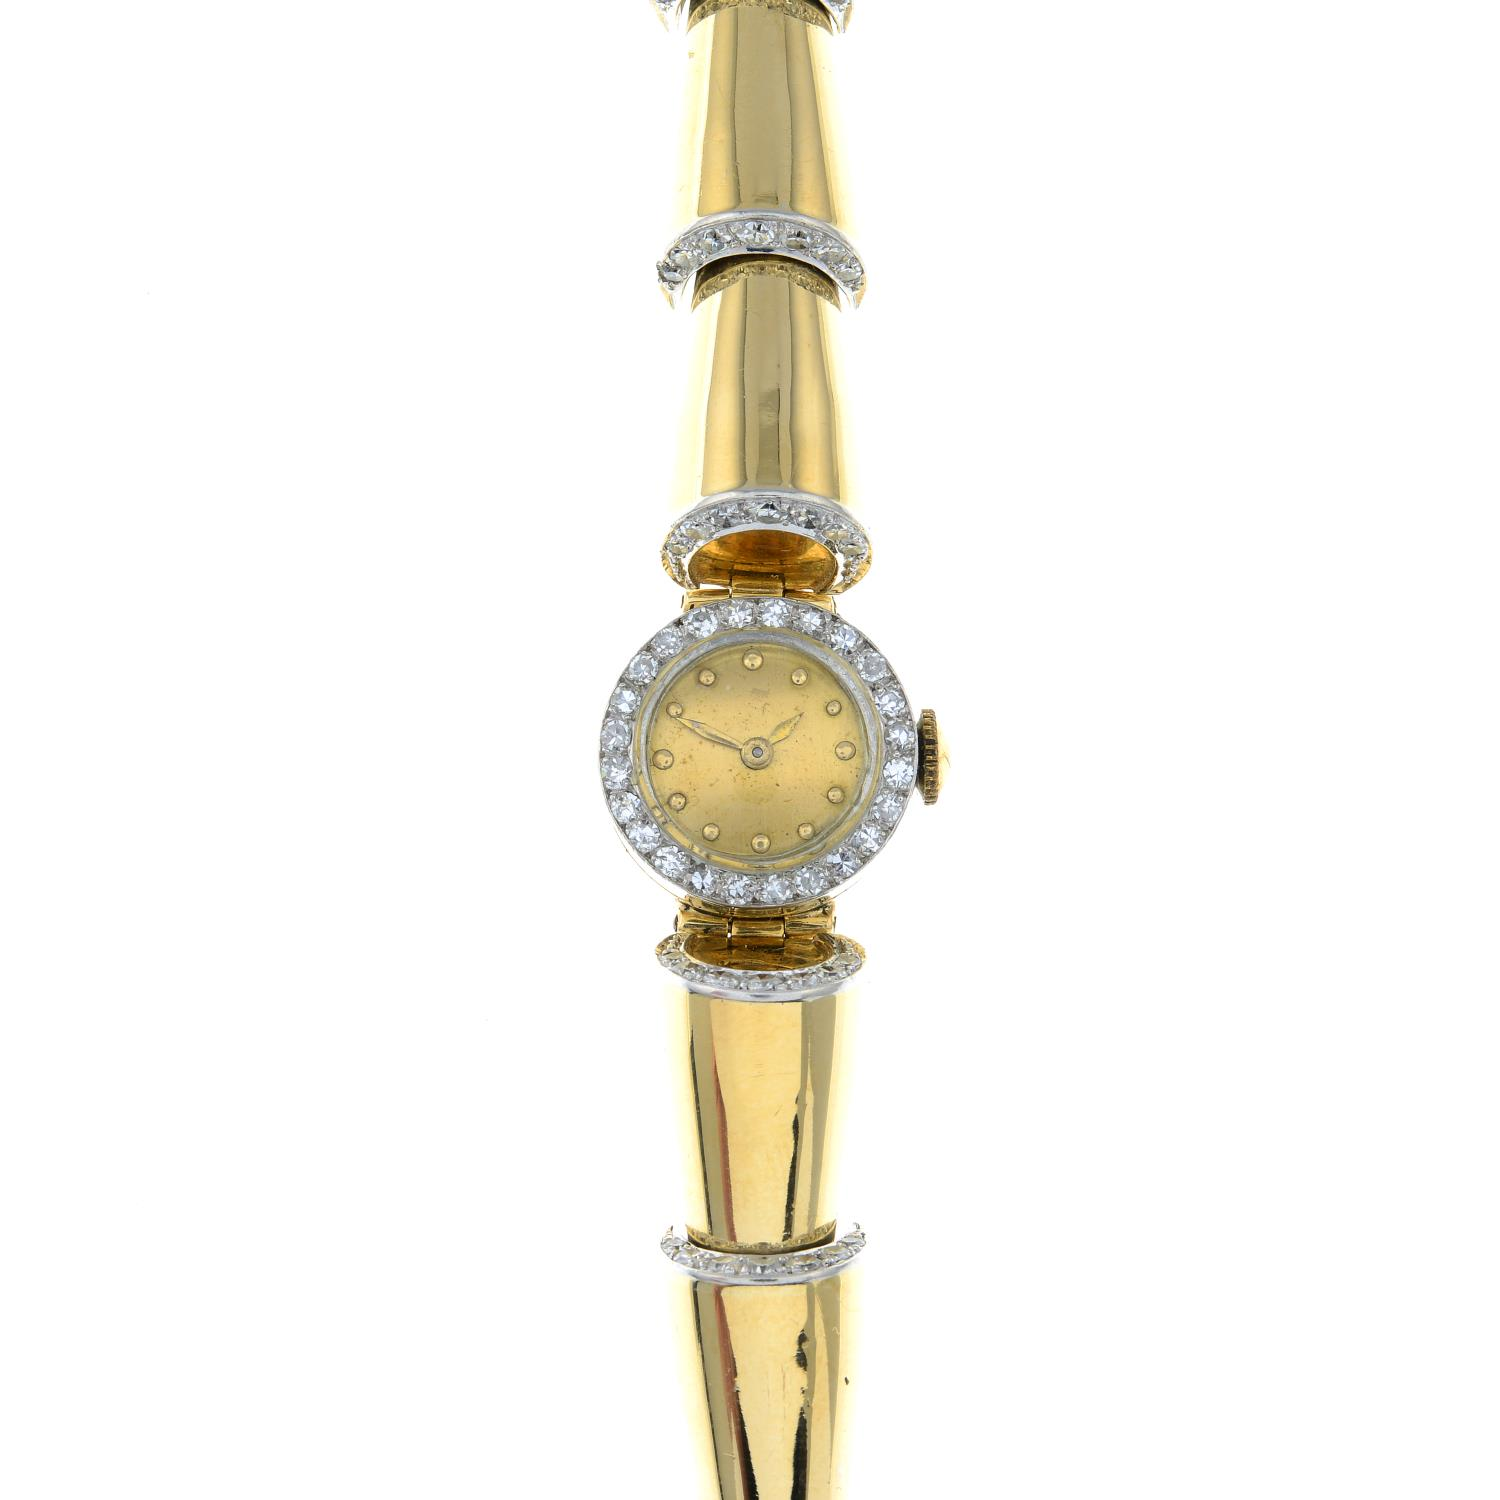 A 1940s gold diamond cocktail watch.Estimated total diamond weight 1.35cts, - Image 2 of 5